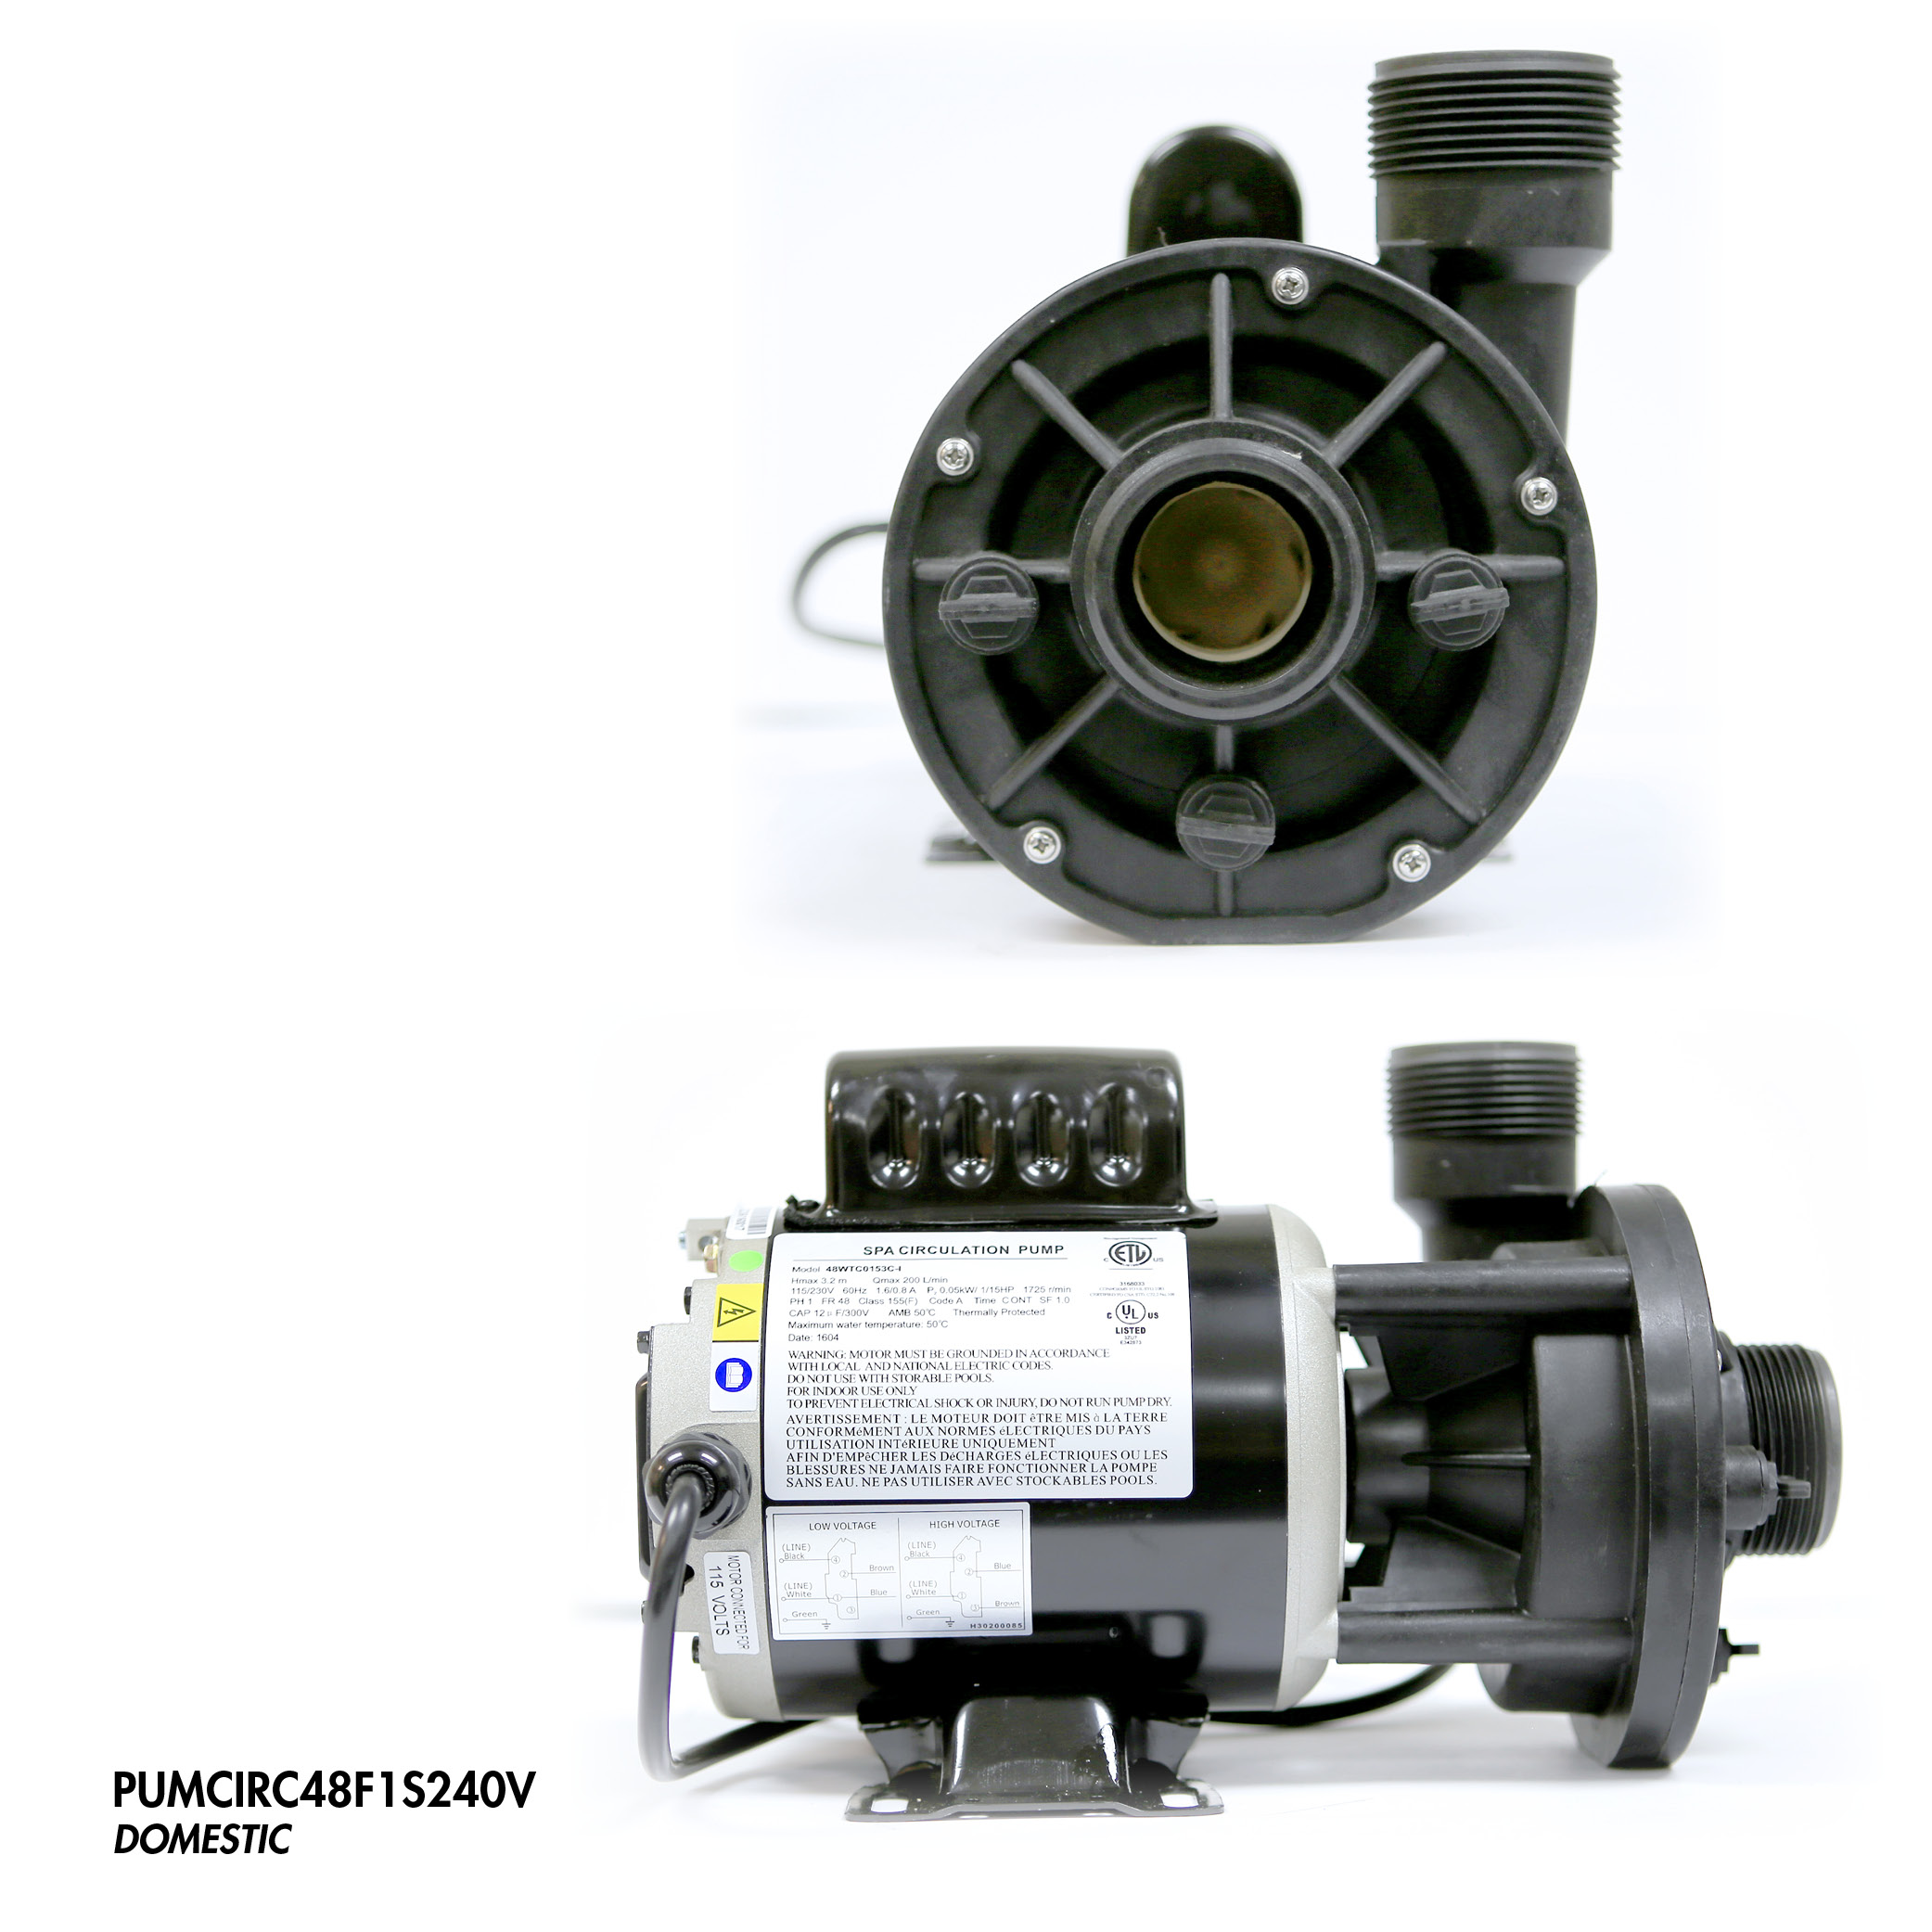 spa pumps spa pump parts and spa components at quickspaparts com this durable cal spas spa pump will provide years of trouble use replace old and malfunctioning spa pumps an original cal spas pump that will